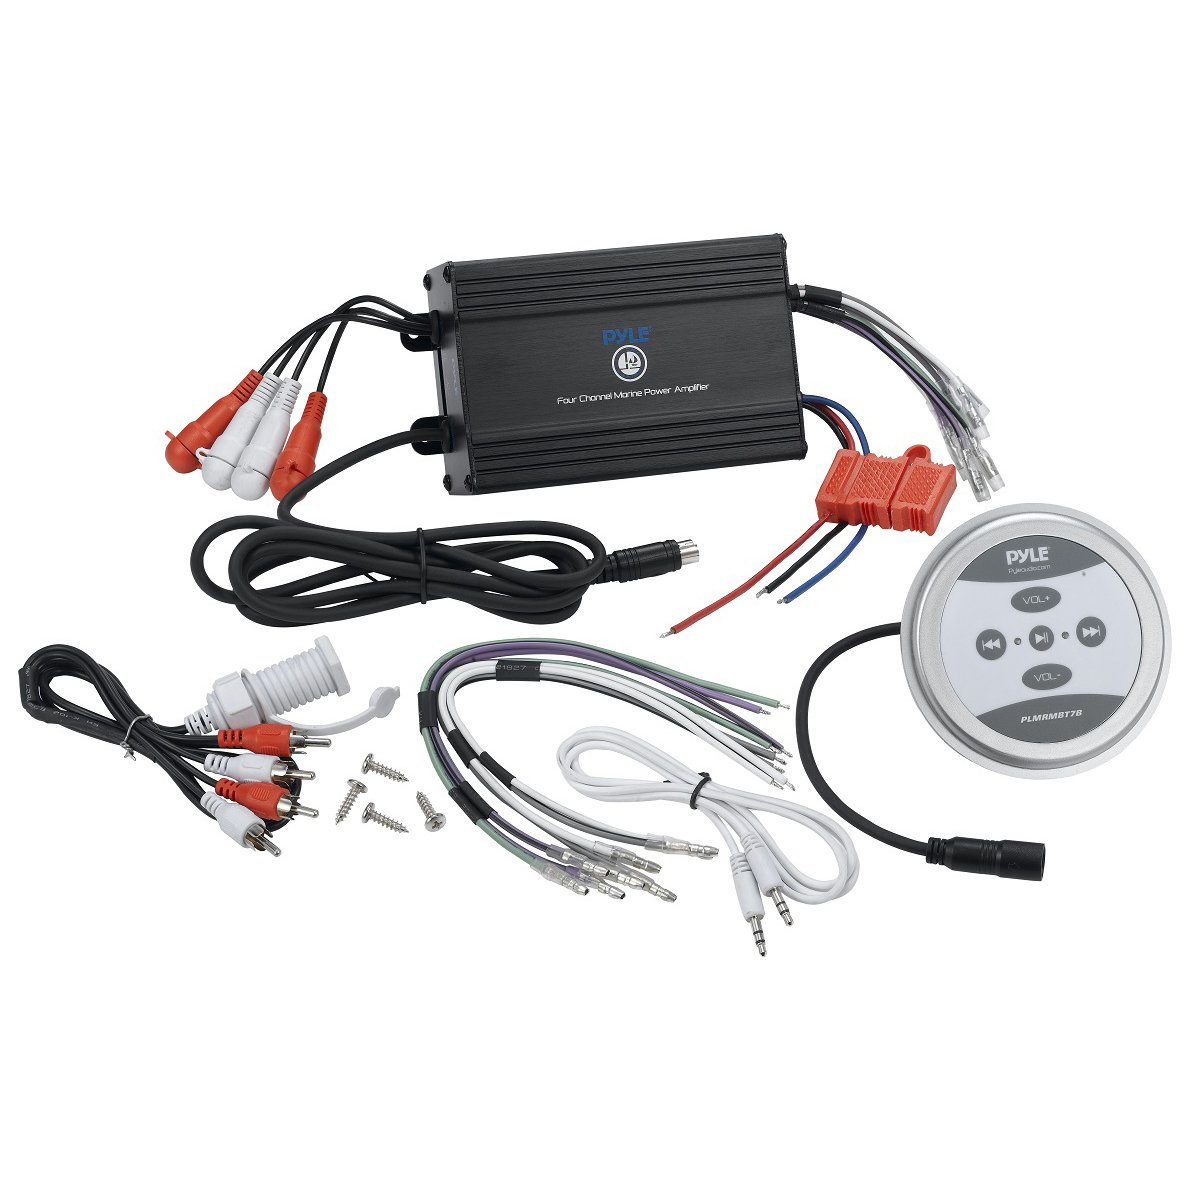 71HiTs xXKL._SL1188_ amazon com pyle compact bluetooth marine amplifier kit  at virtualis.co